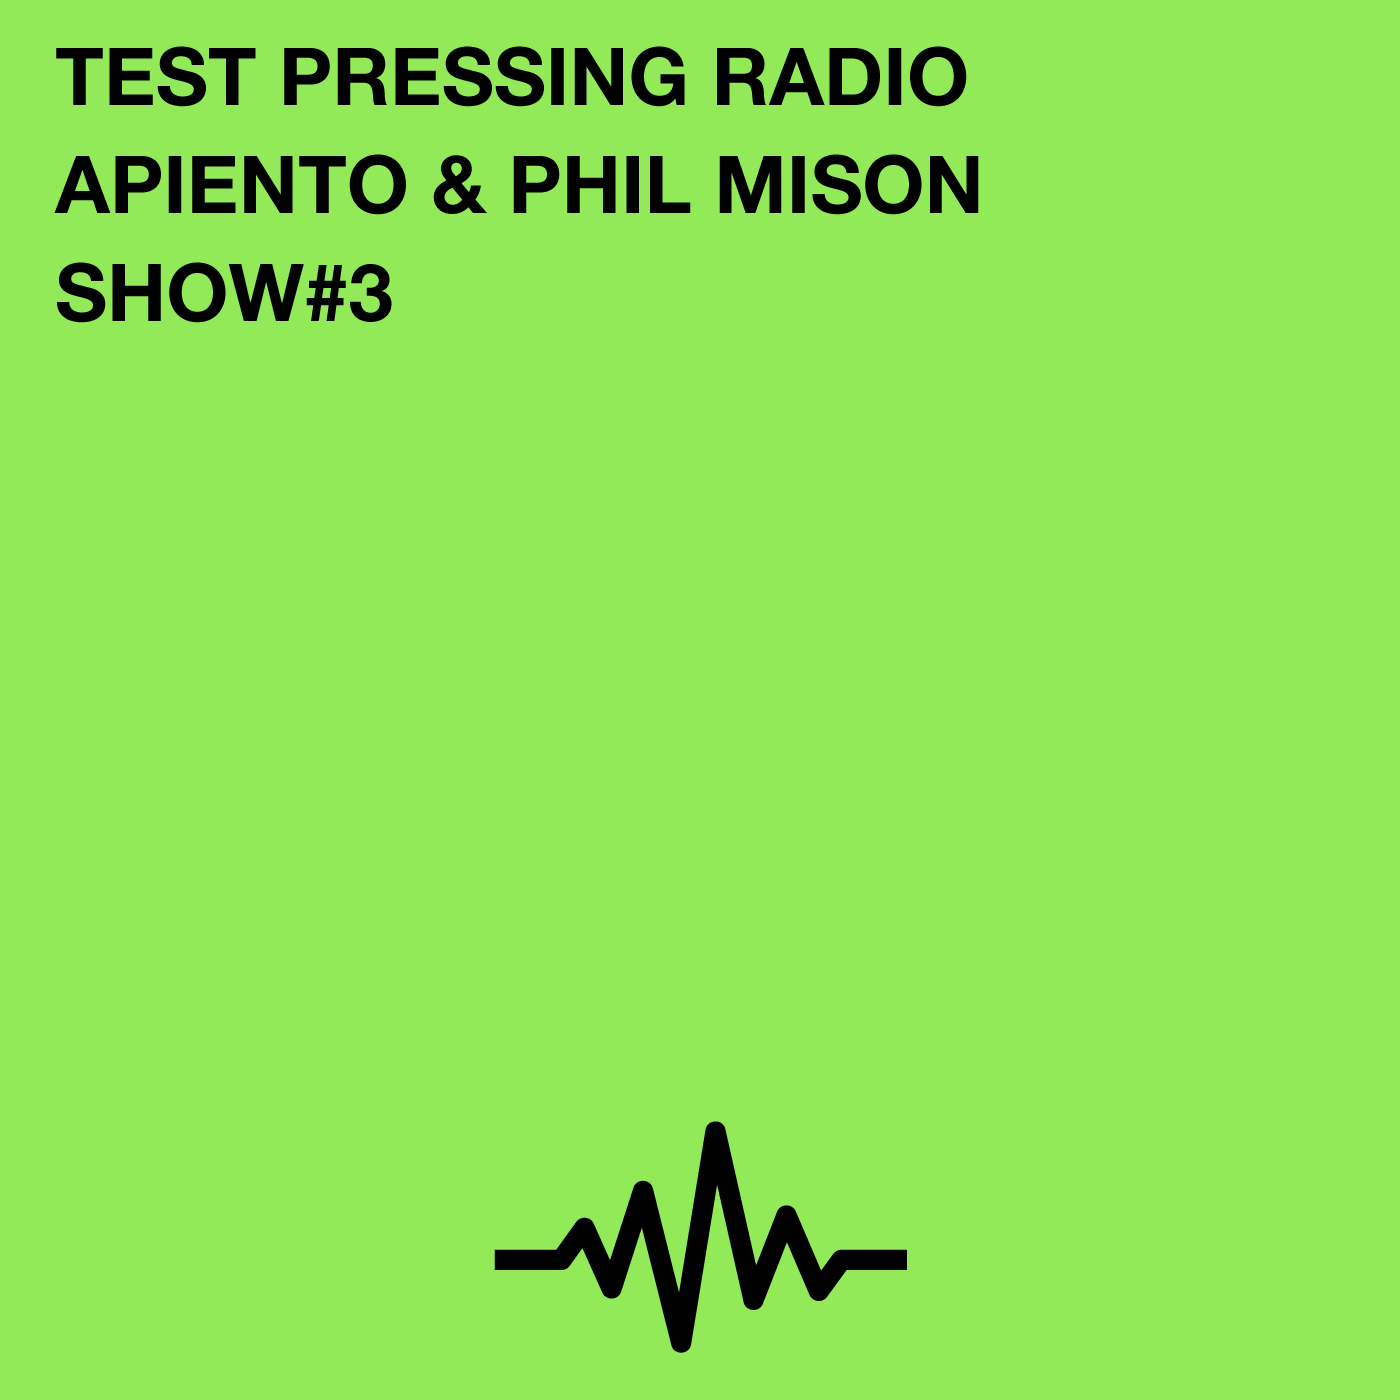 Apiento, Phil Mison, Test Pressing, Radio, Mello, Balearic, Podcast